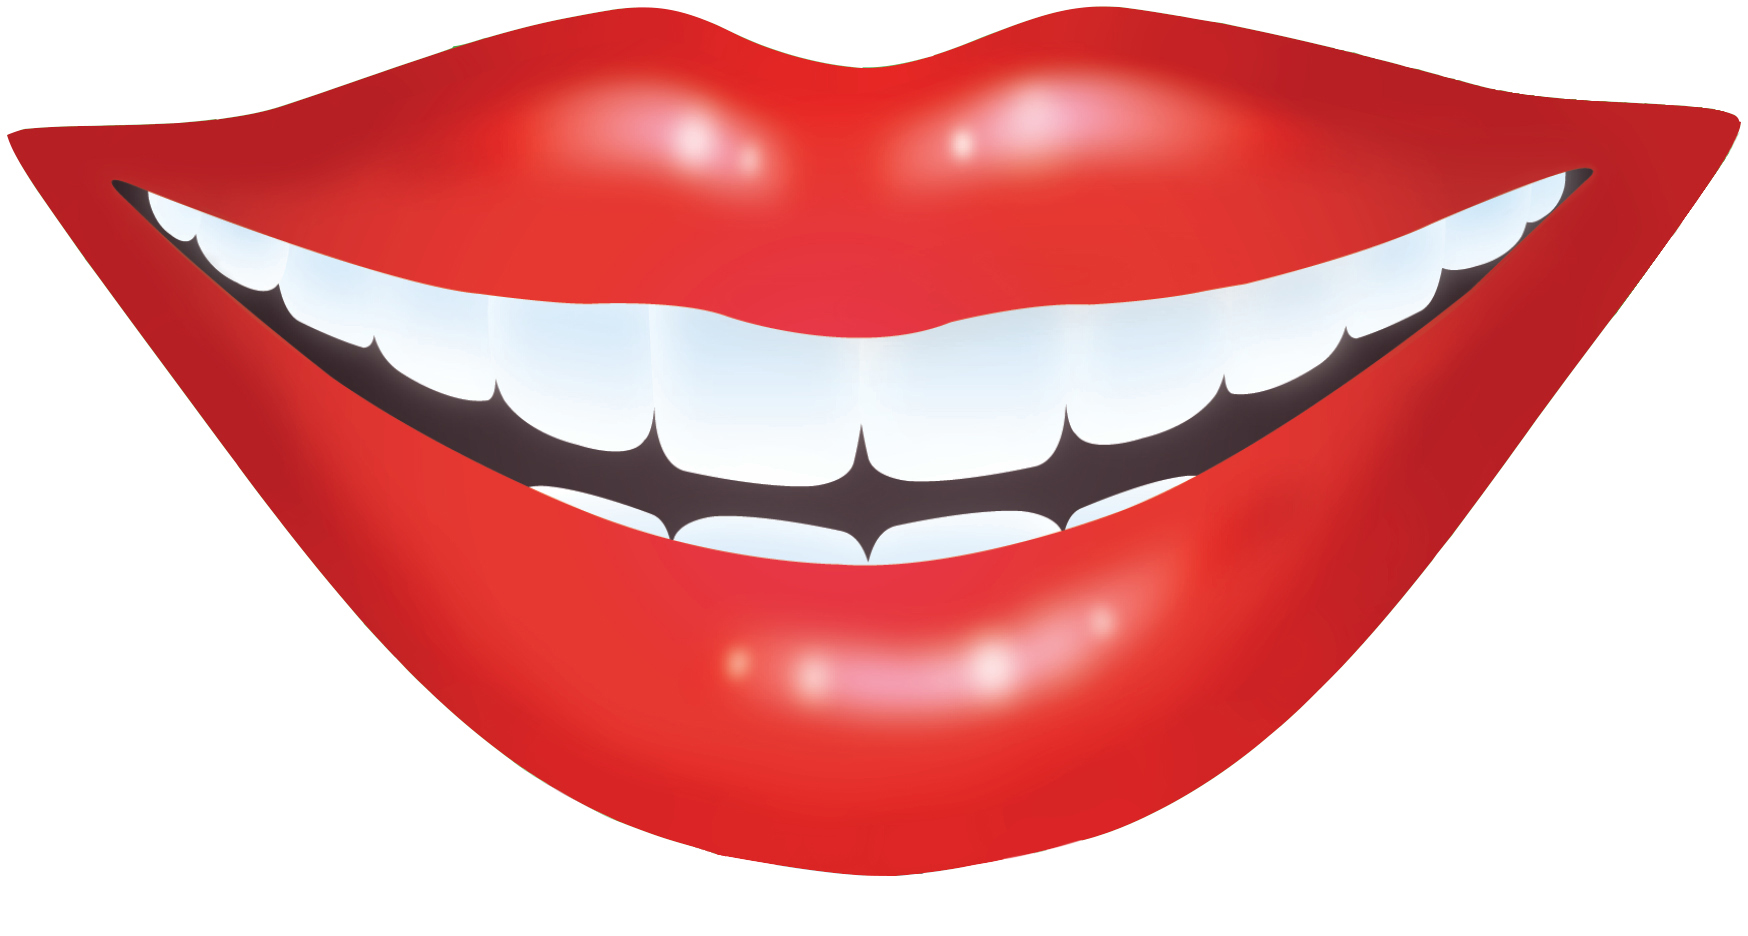 Lips clipart #8, Download drawings